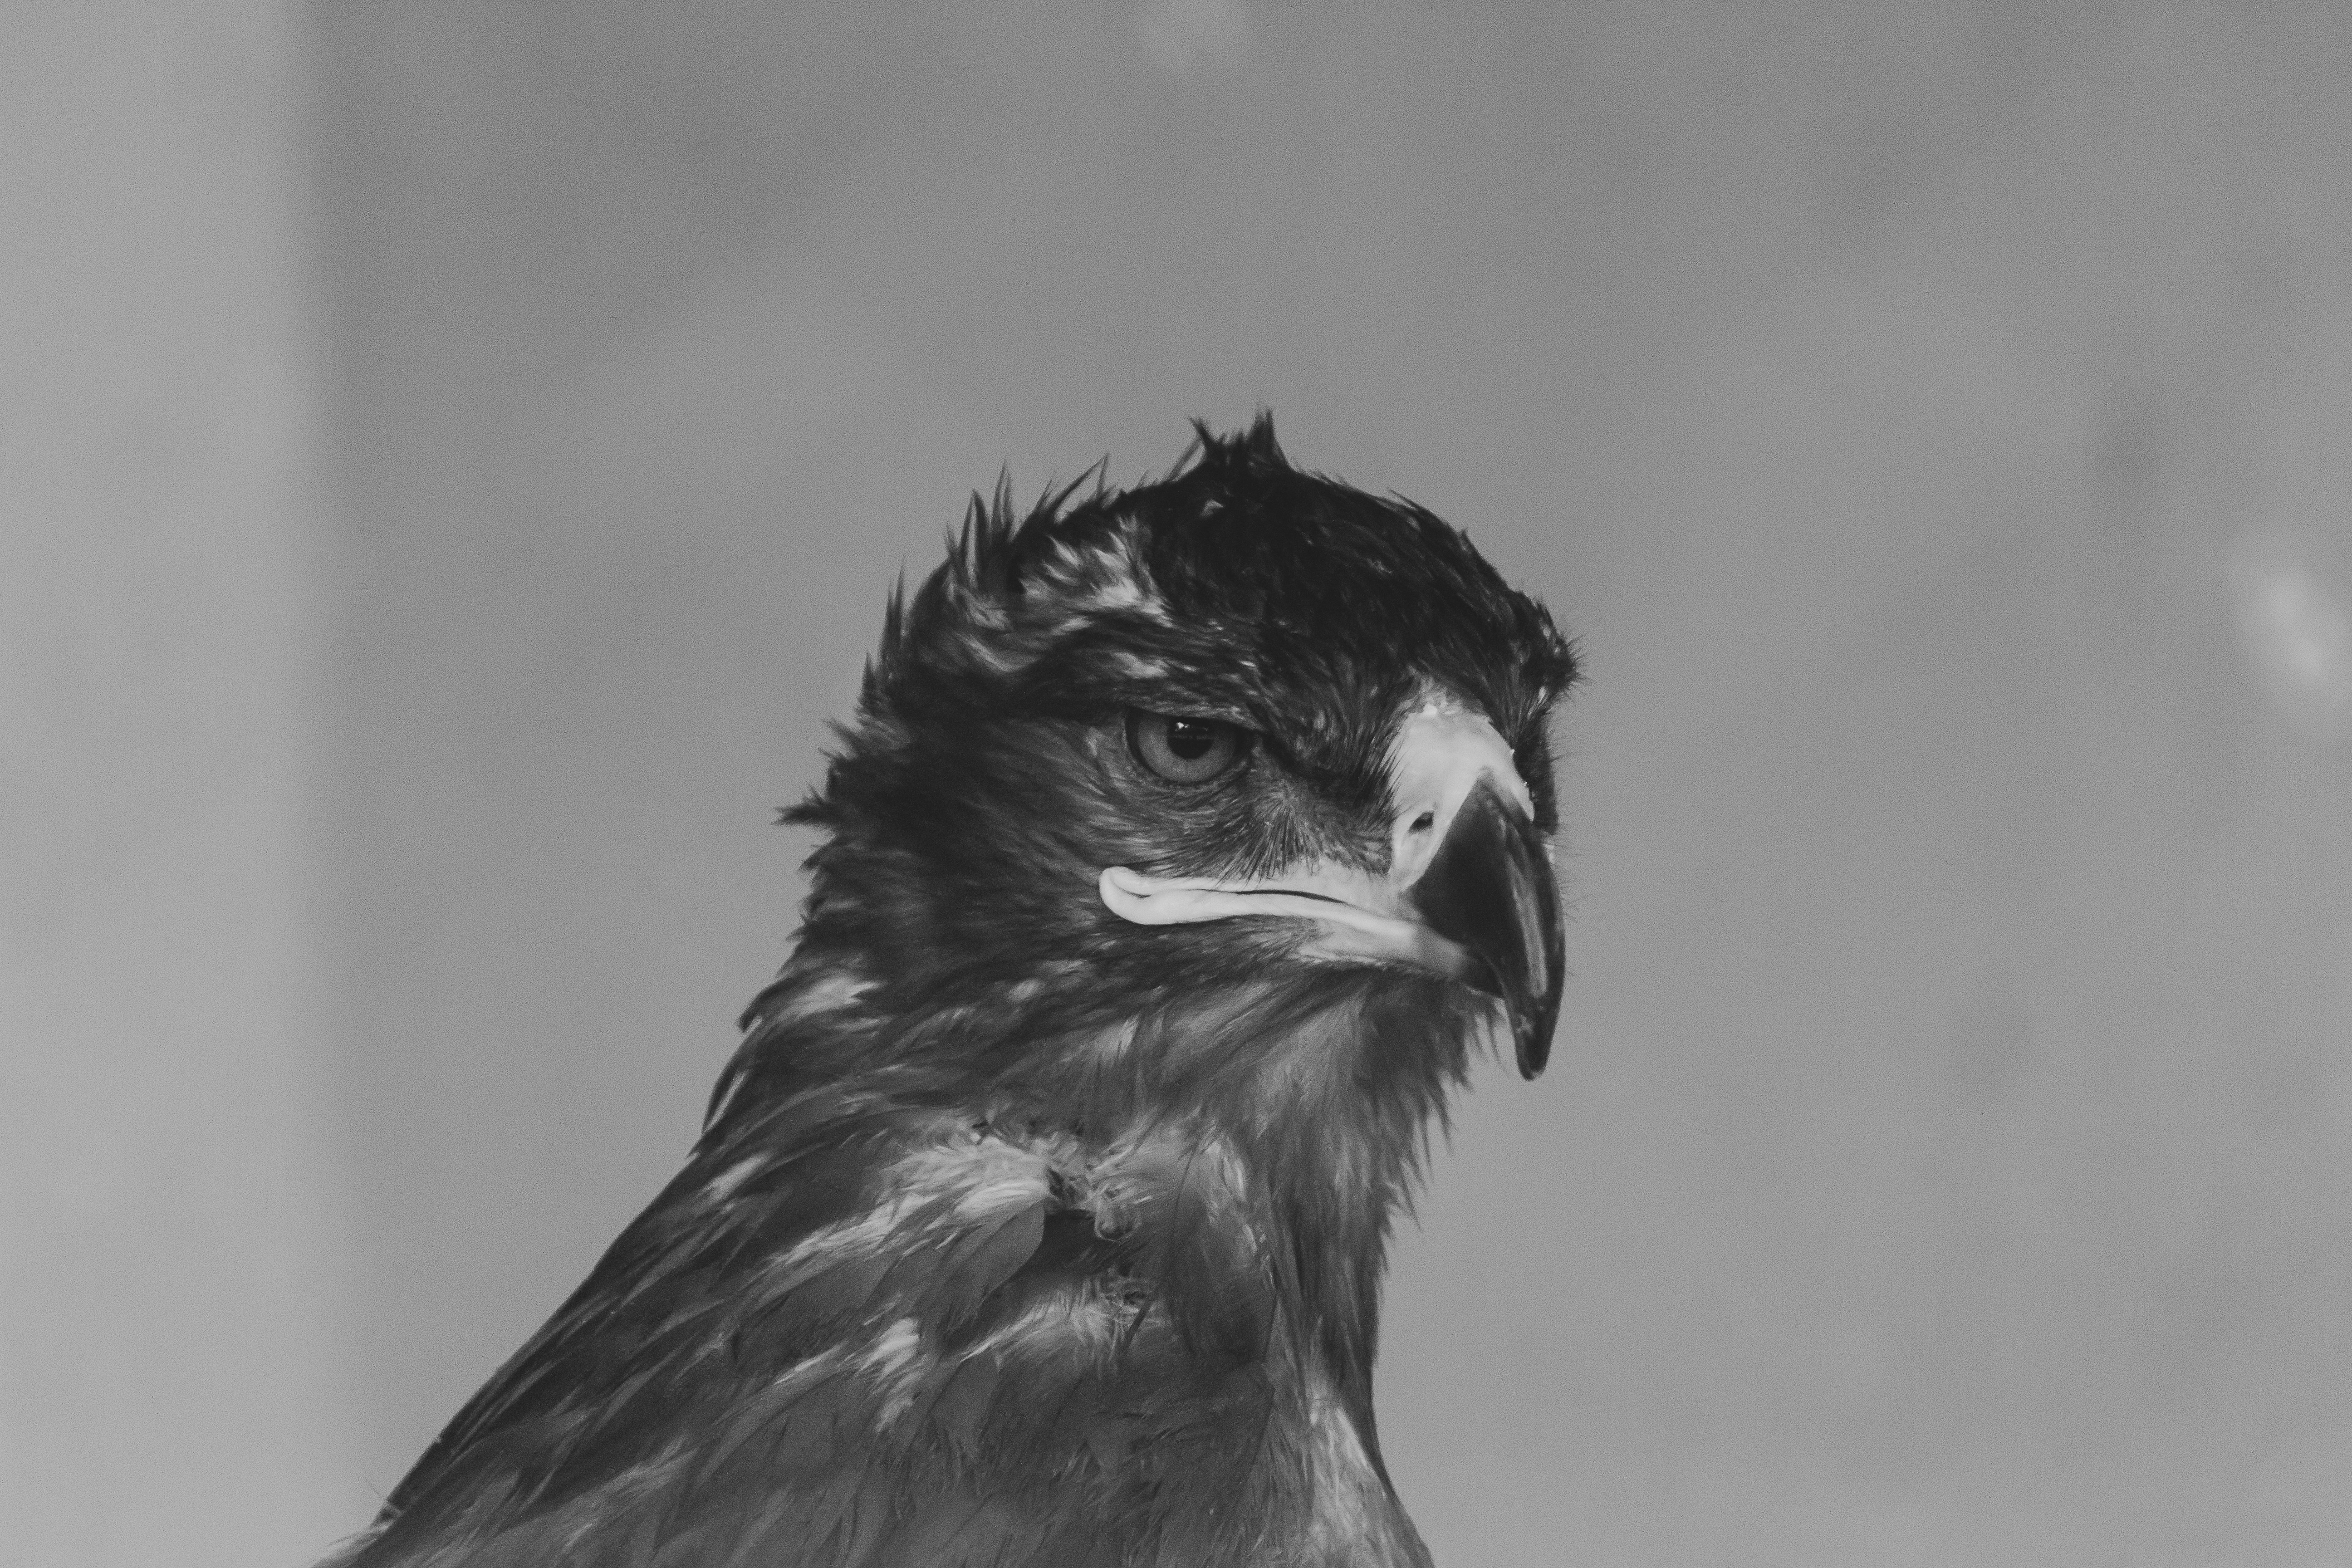 Eagle looking at other direction